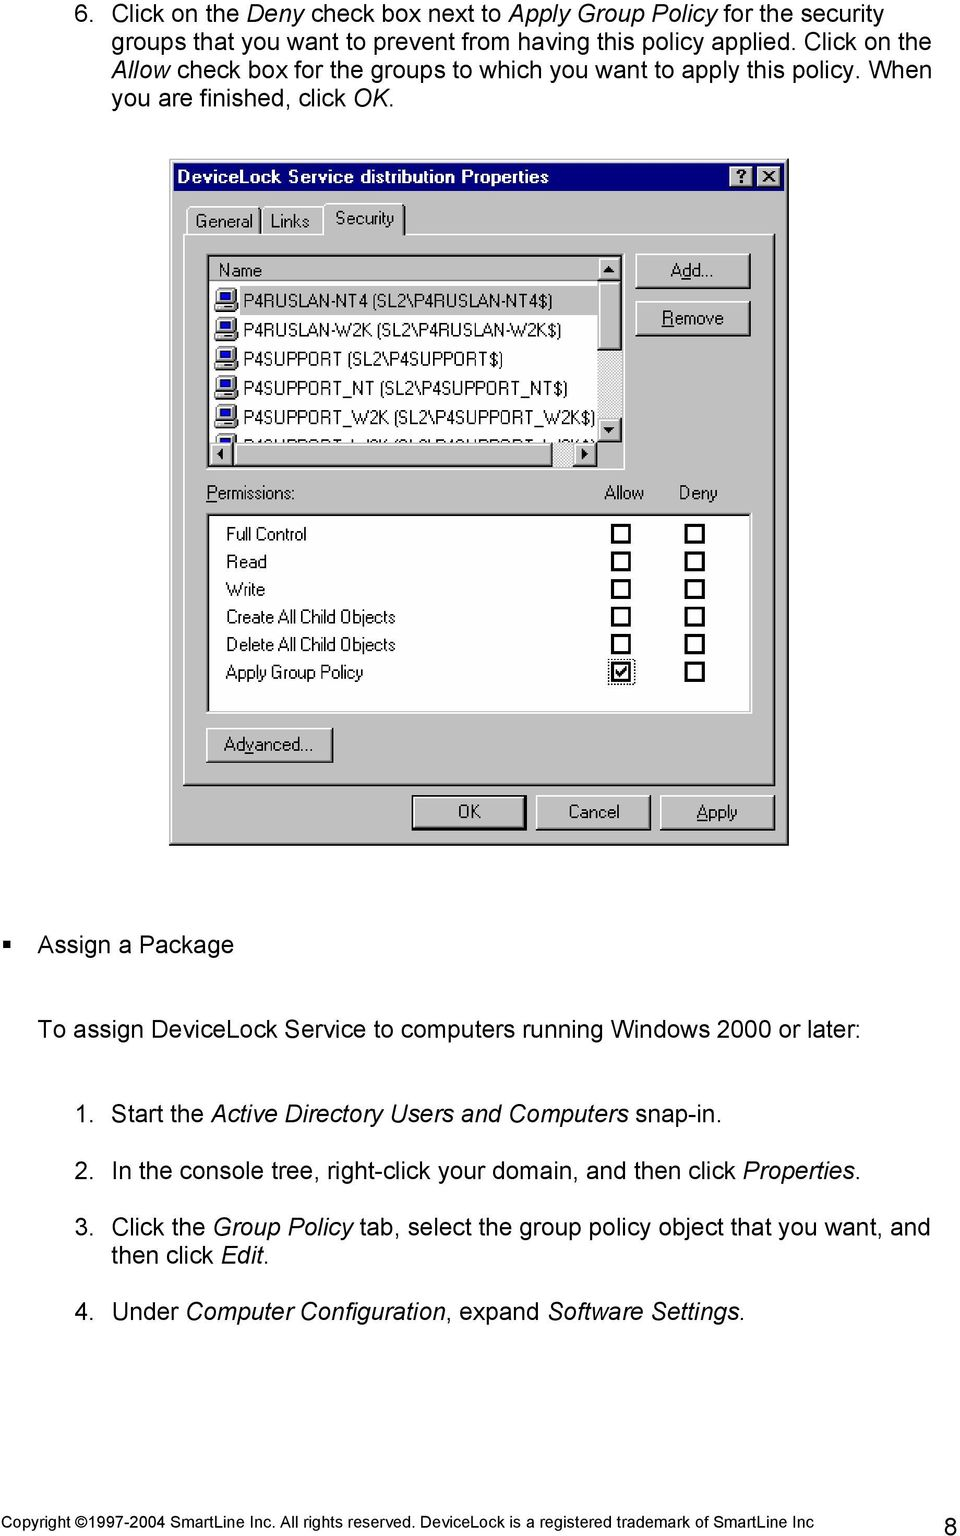 Assign a Package To assign DeviceLock Service to computers running Windows 2000 or later: 1. Start the Active Directory Users and Computers snap-in. 2. In the console tree, right-click your domain, and then click Properties.